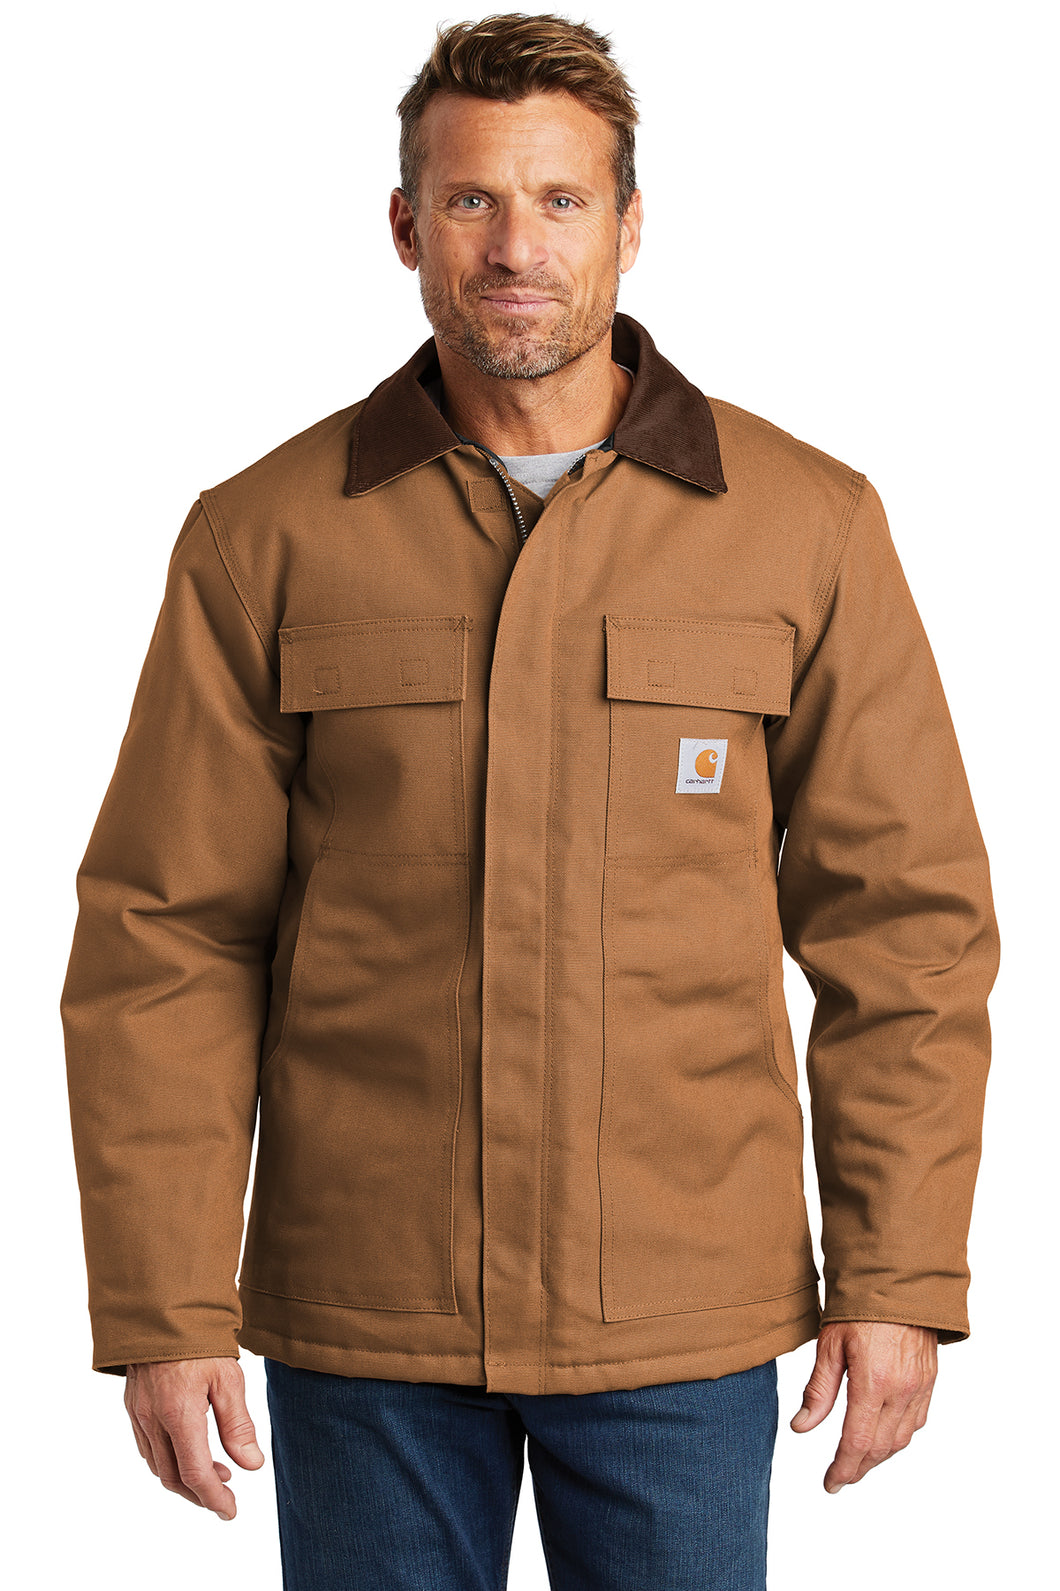 CTC003 - Carhartt ® Duck Traditional Coat